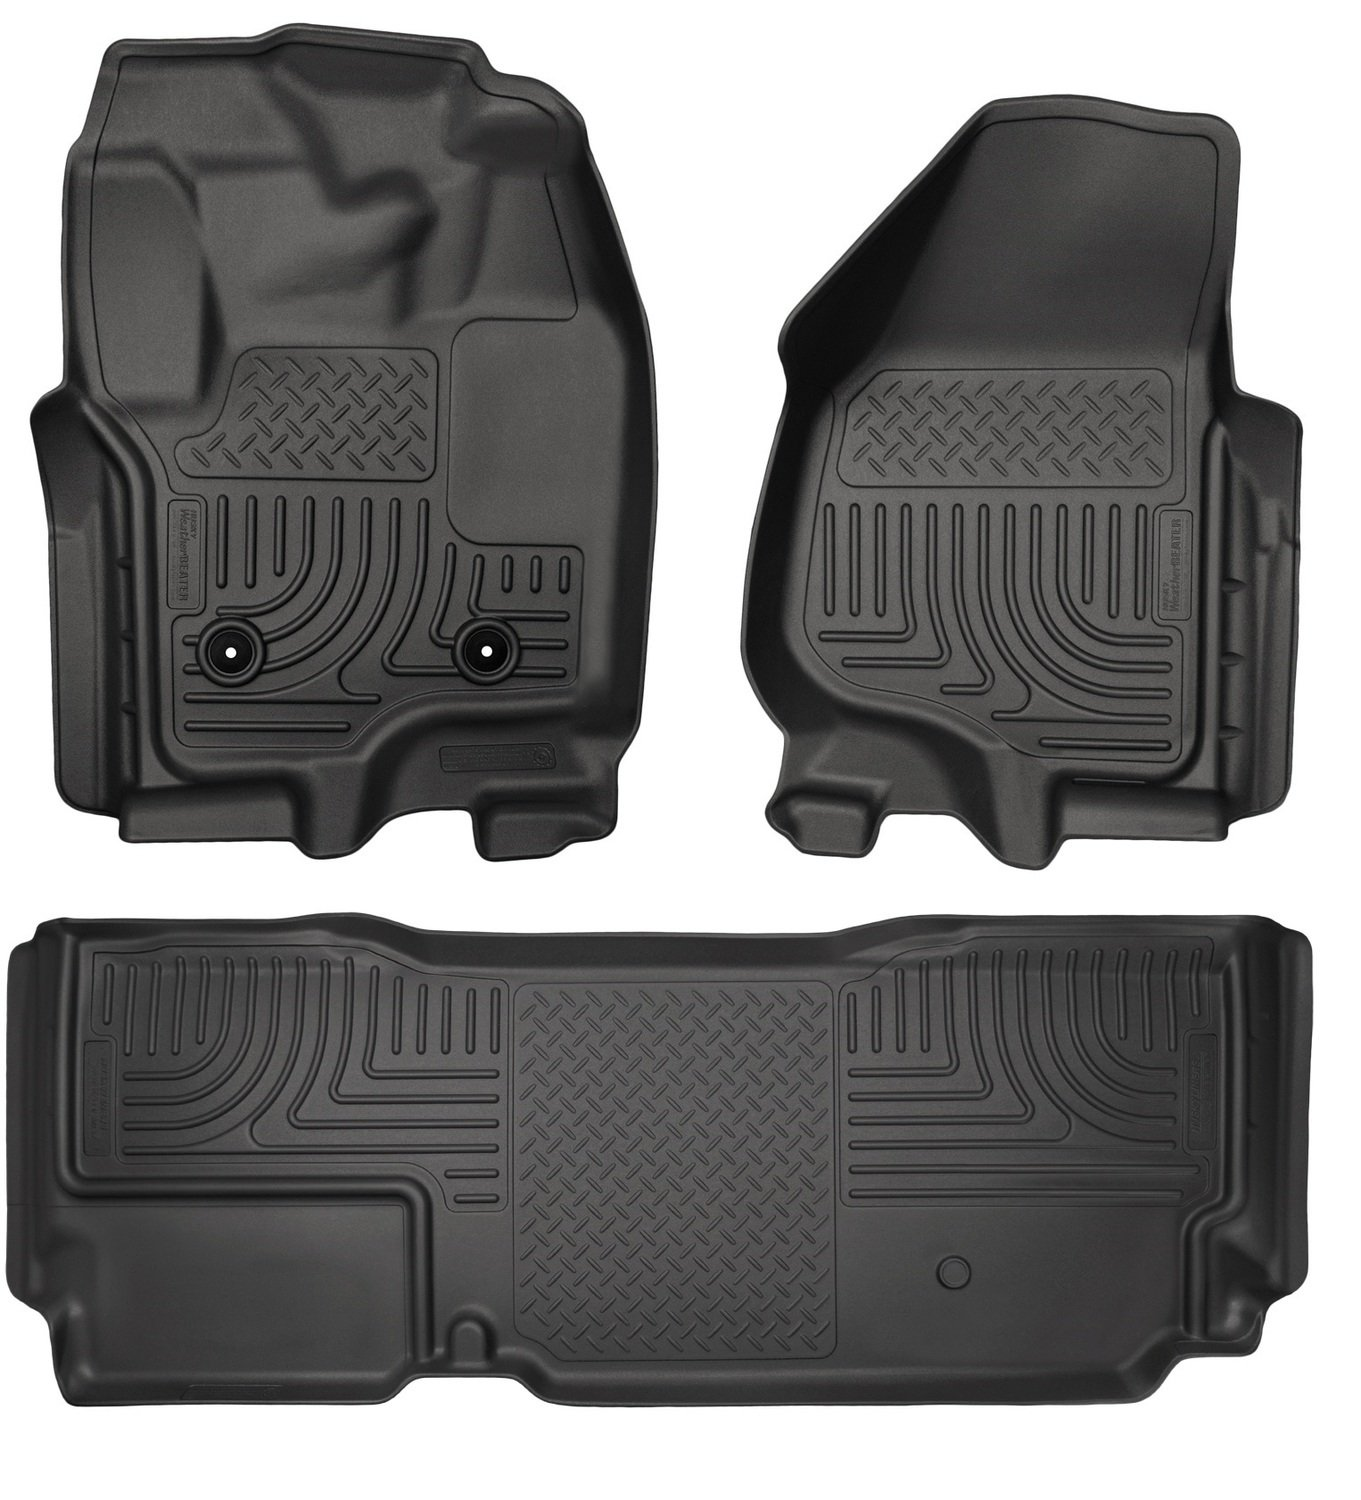 Husky Liners 99711 Front & 2nd Seat Floor Liners Fits 12-16 F250 Crew WITH Carpet and Driver Side Foot Rest